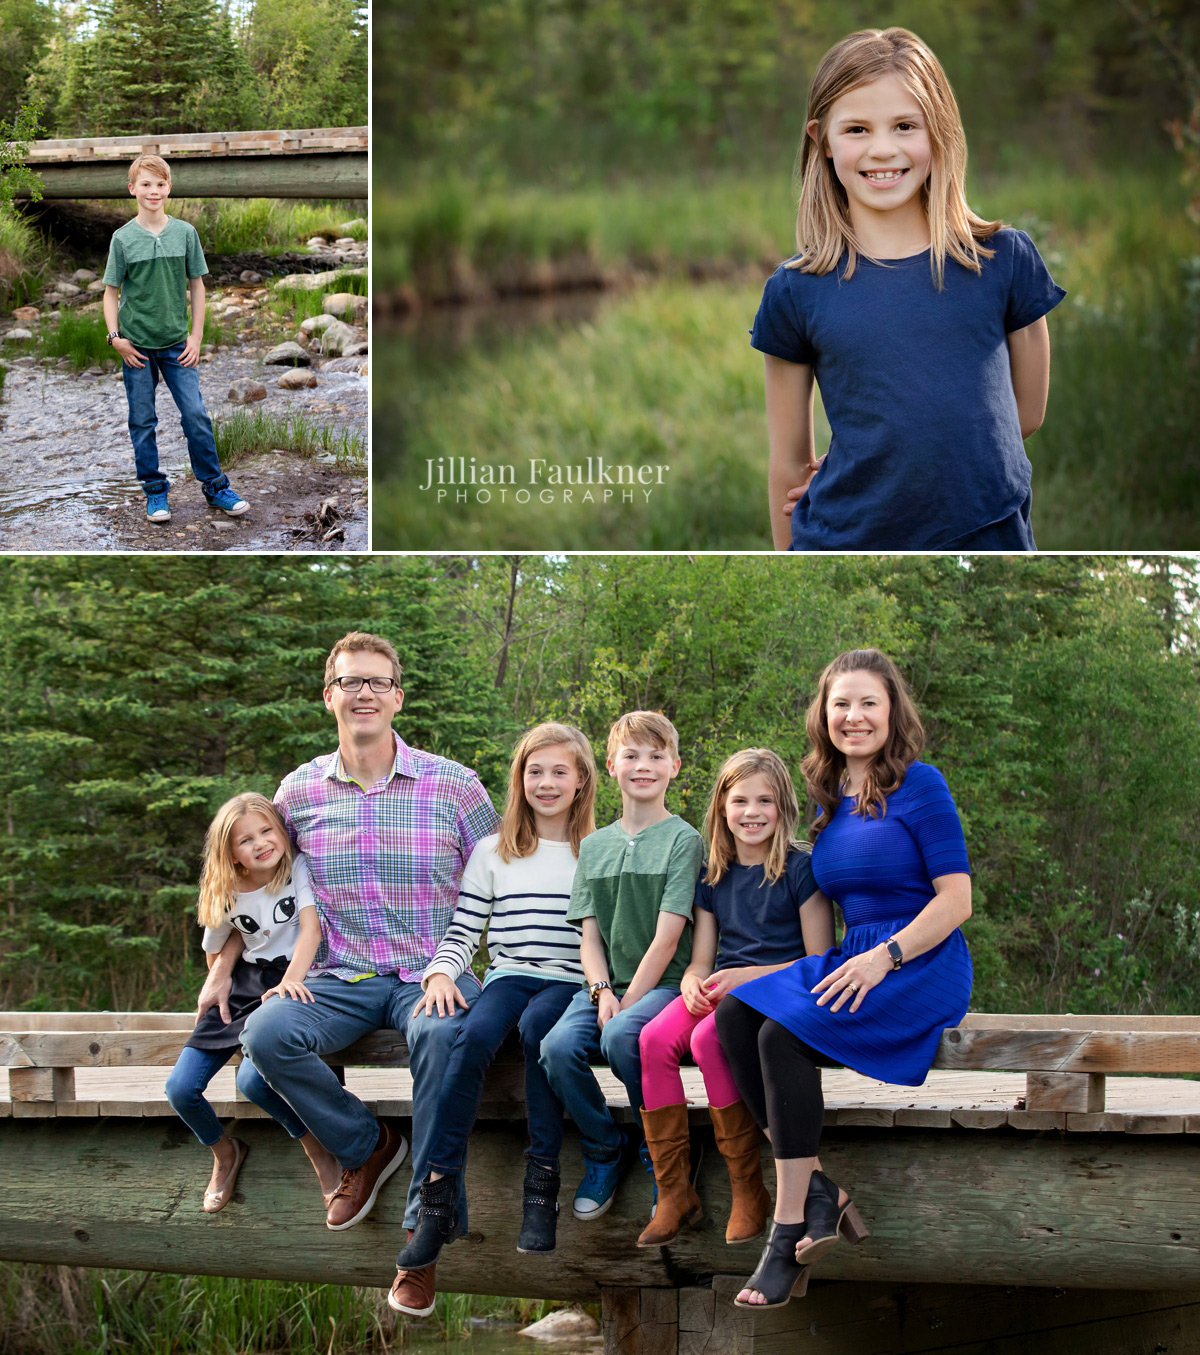 Calgary newborn, child and family photographer, Jillian Faulkner offers portrait photography session both on location and in her southwest Calgary photography portrait studio. Her attention to detail, and beautifully printed final images are what keep her clients coming back year after year!